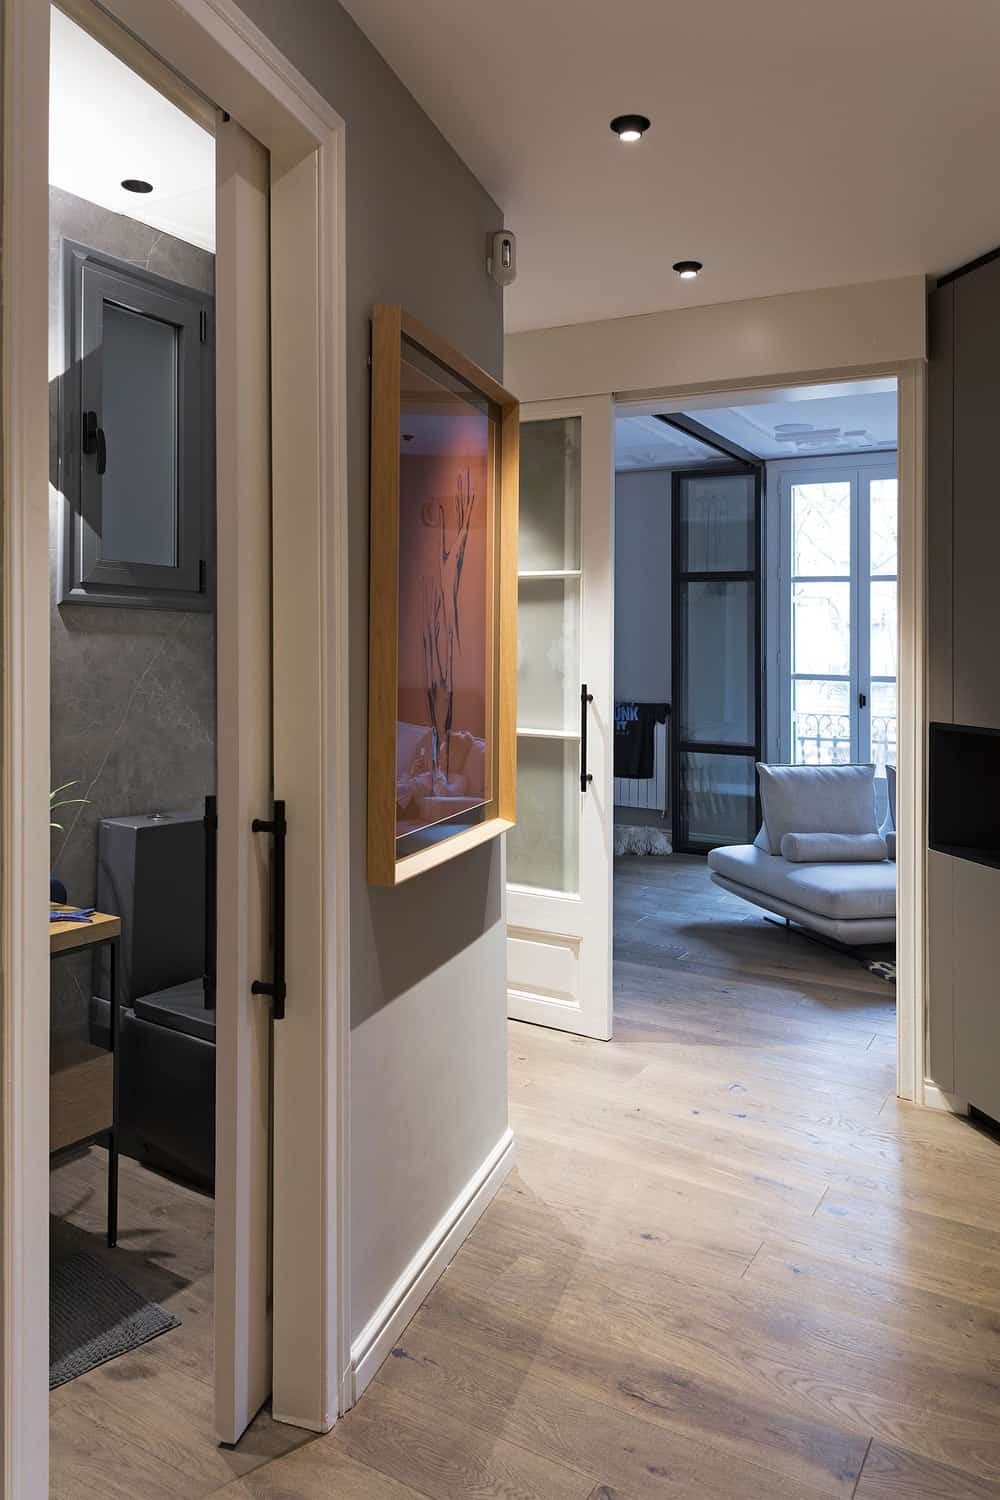 This view of the hallway showcases the proximity of the bathroom from the living room door.